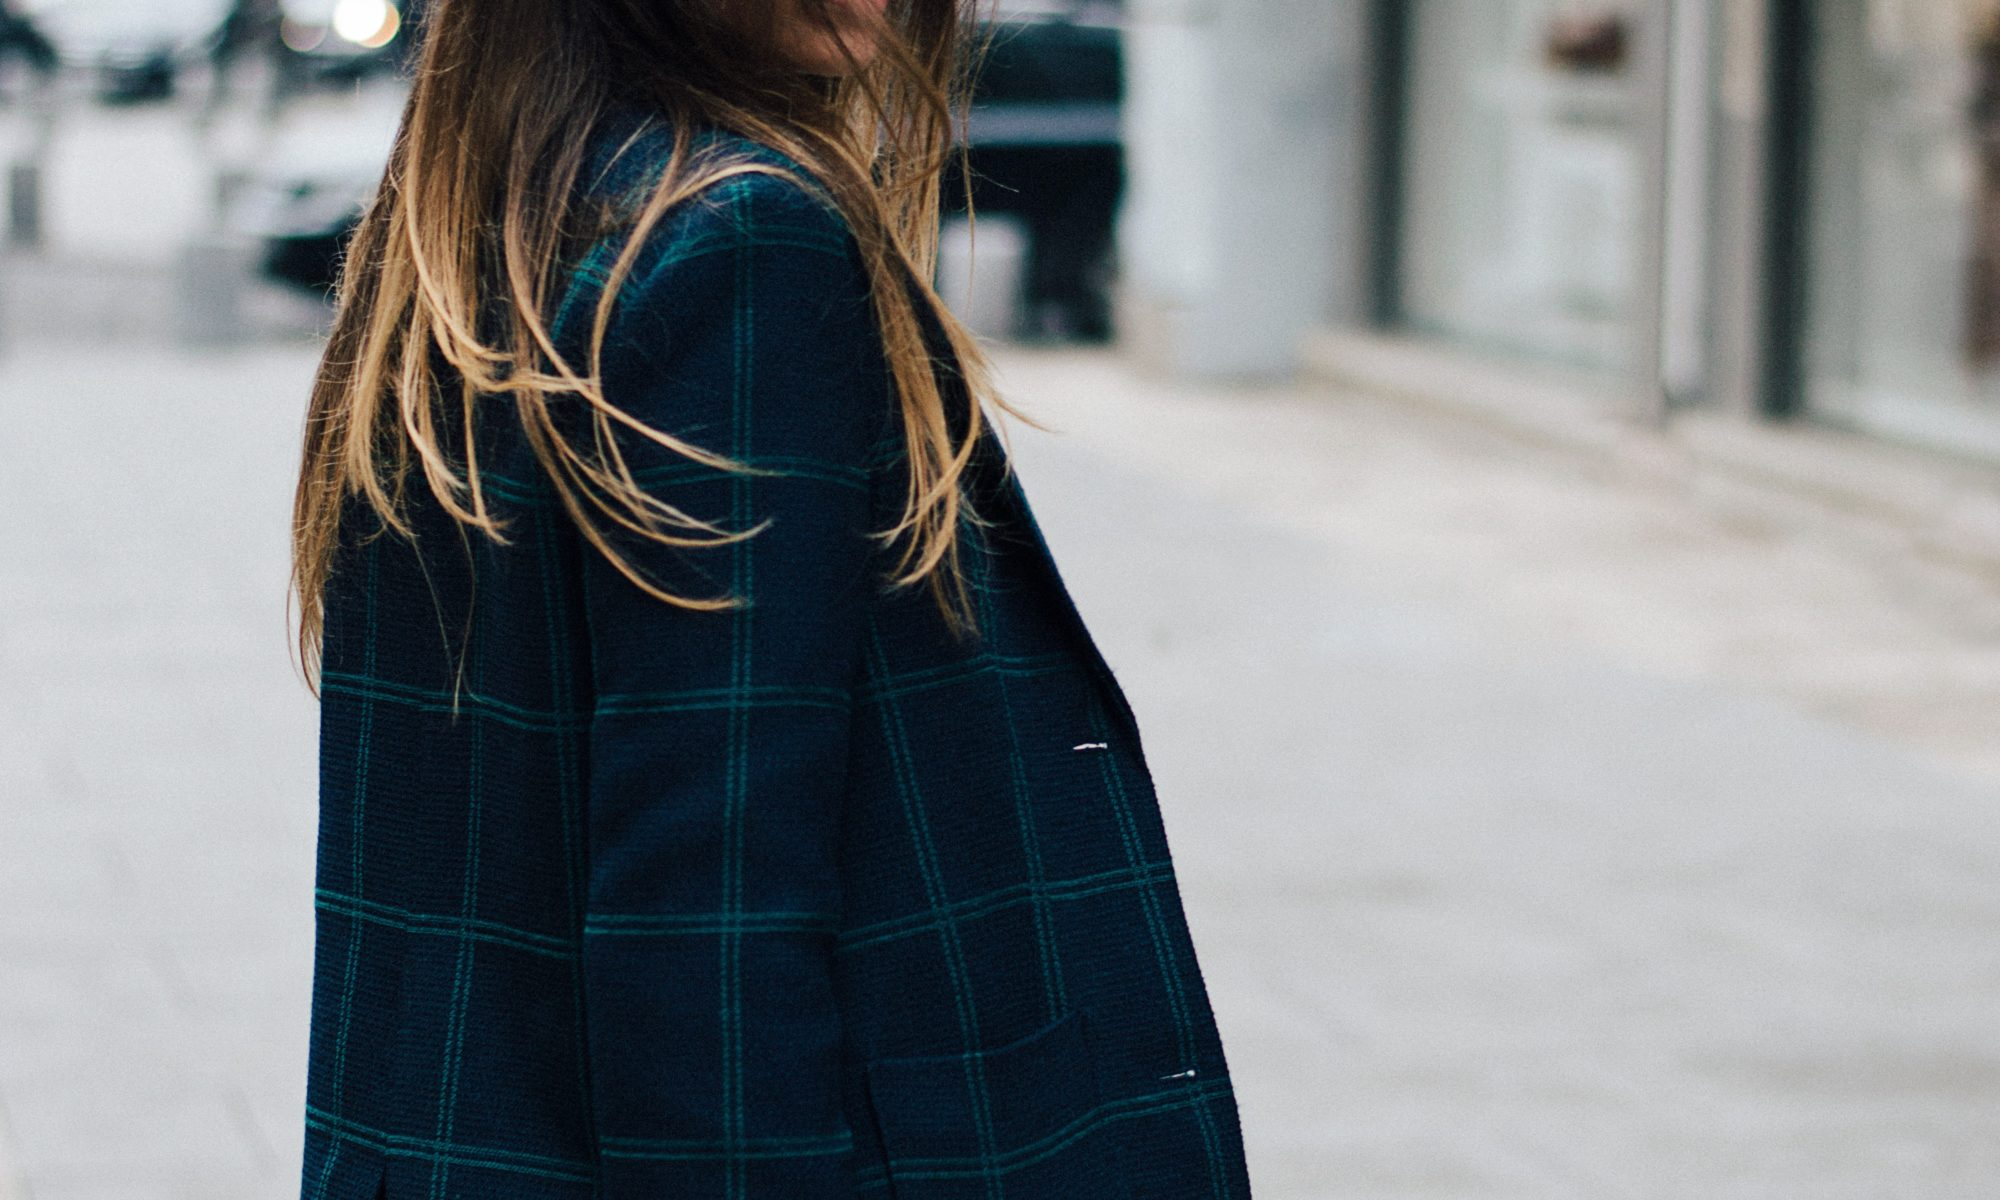 Brad Roemer's designers love fall fashion, especially when plaid blazers and stripes are involved.